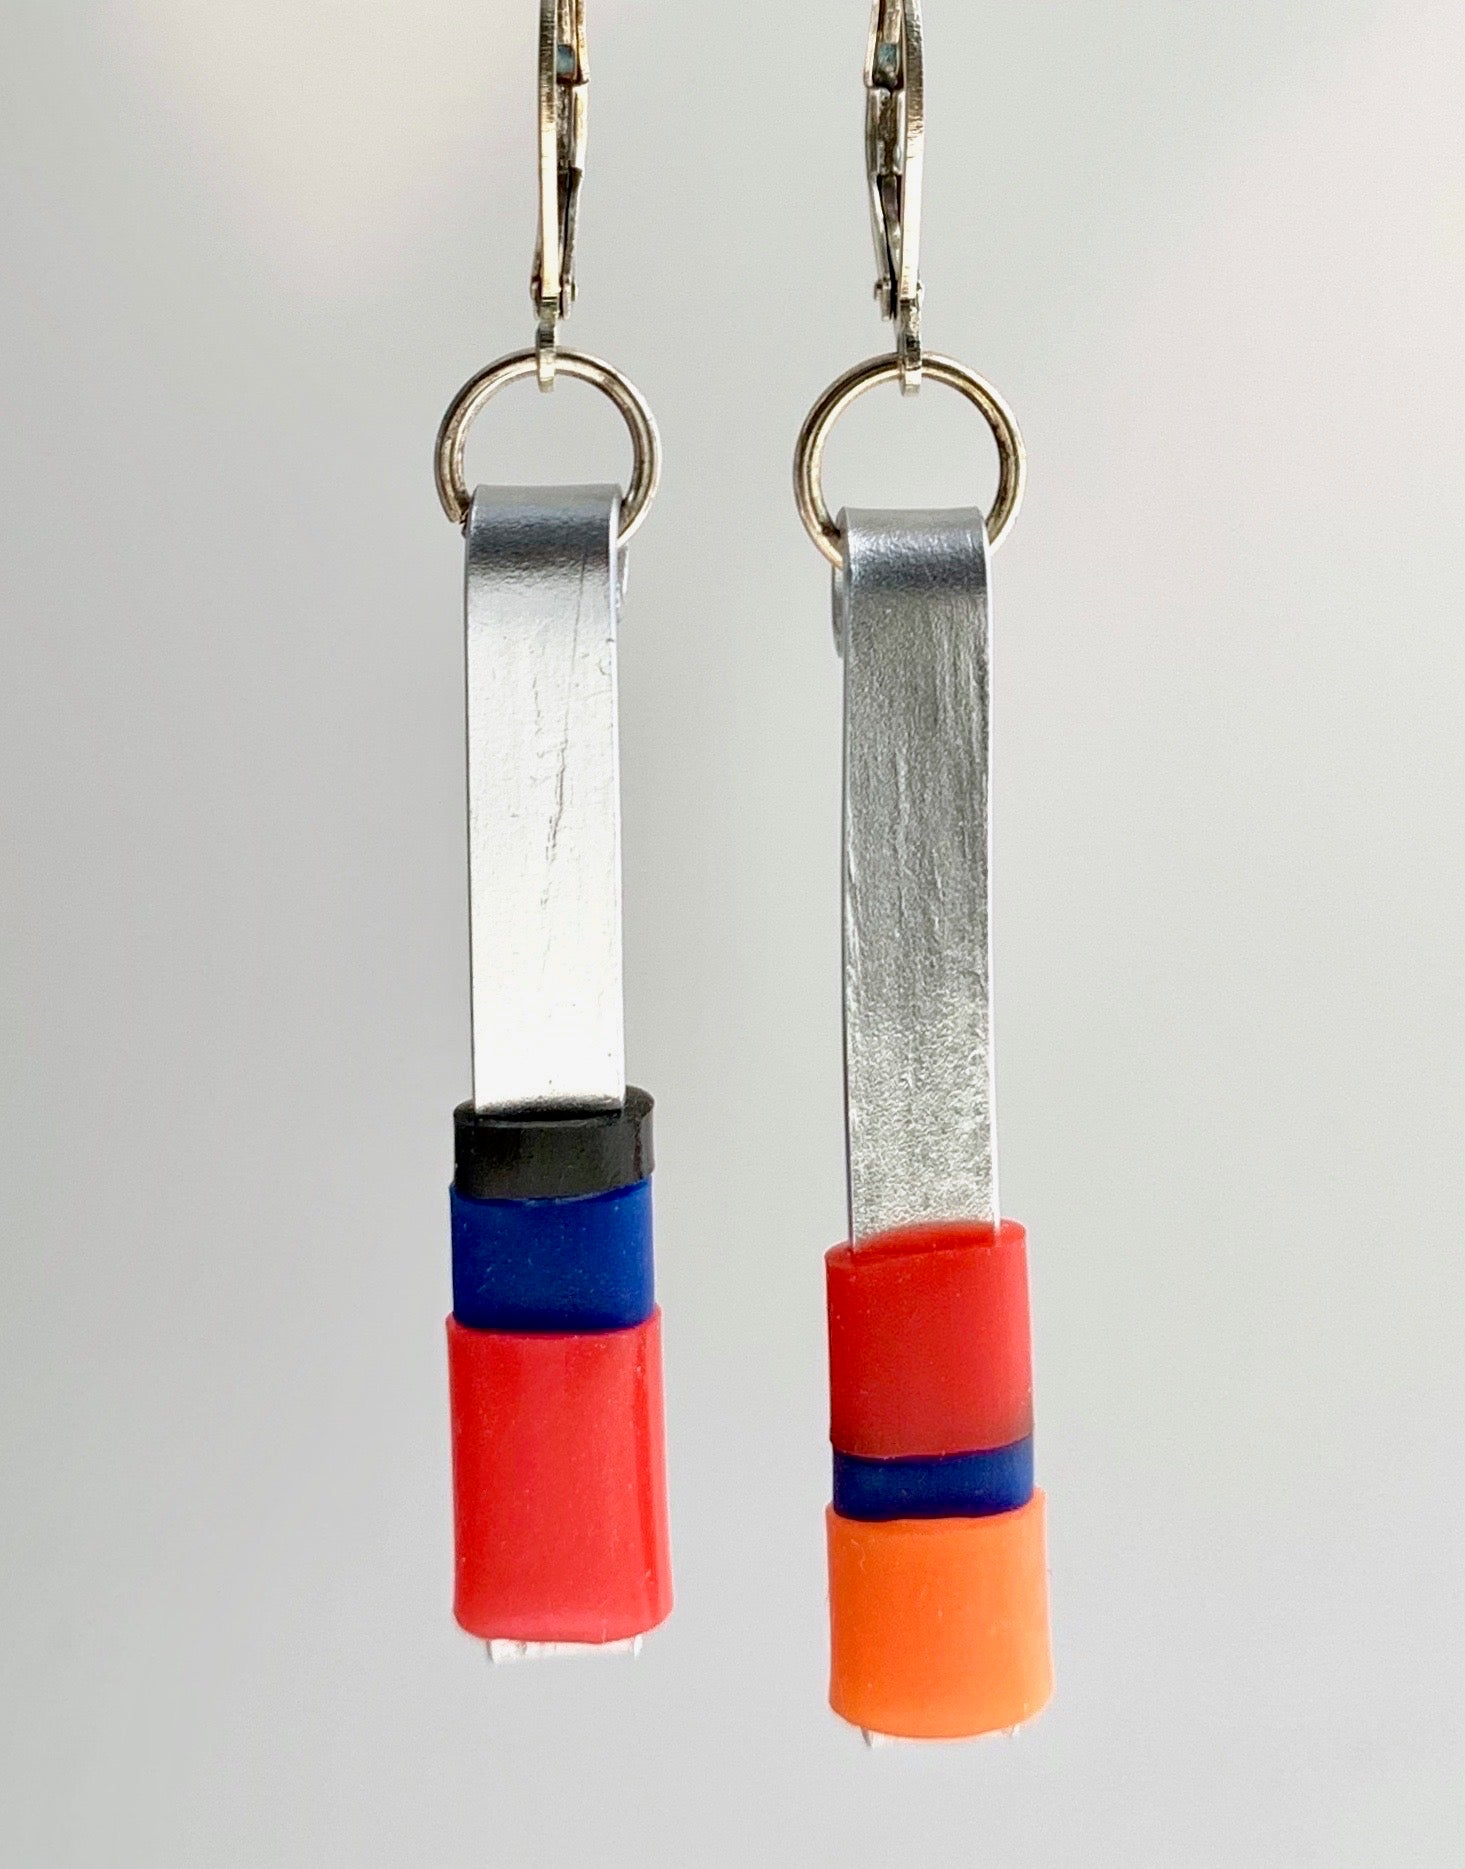 Matchstick earrings in silver coloured aluminum wire with red, orange, royal blue and black coloured silicone tubing. These hang 4.5cm in length.